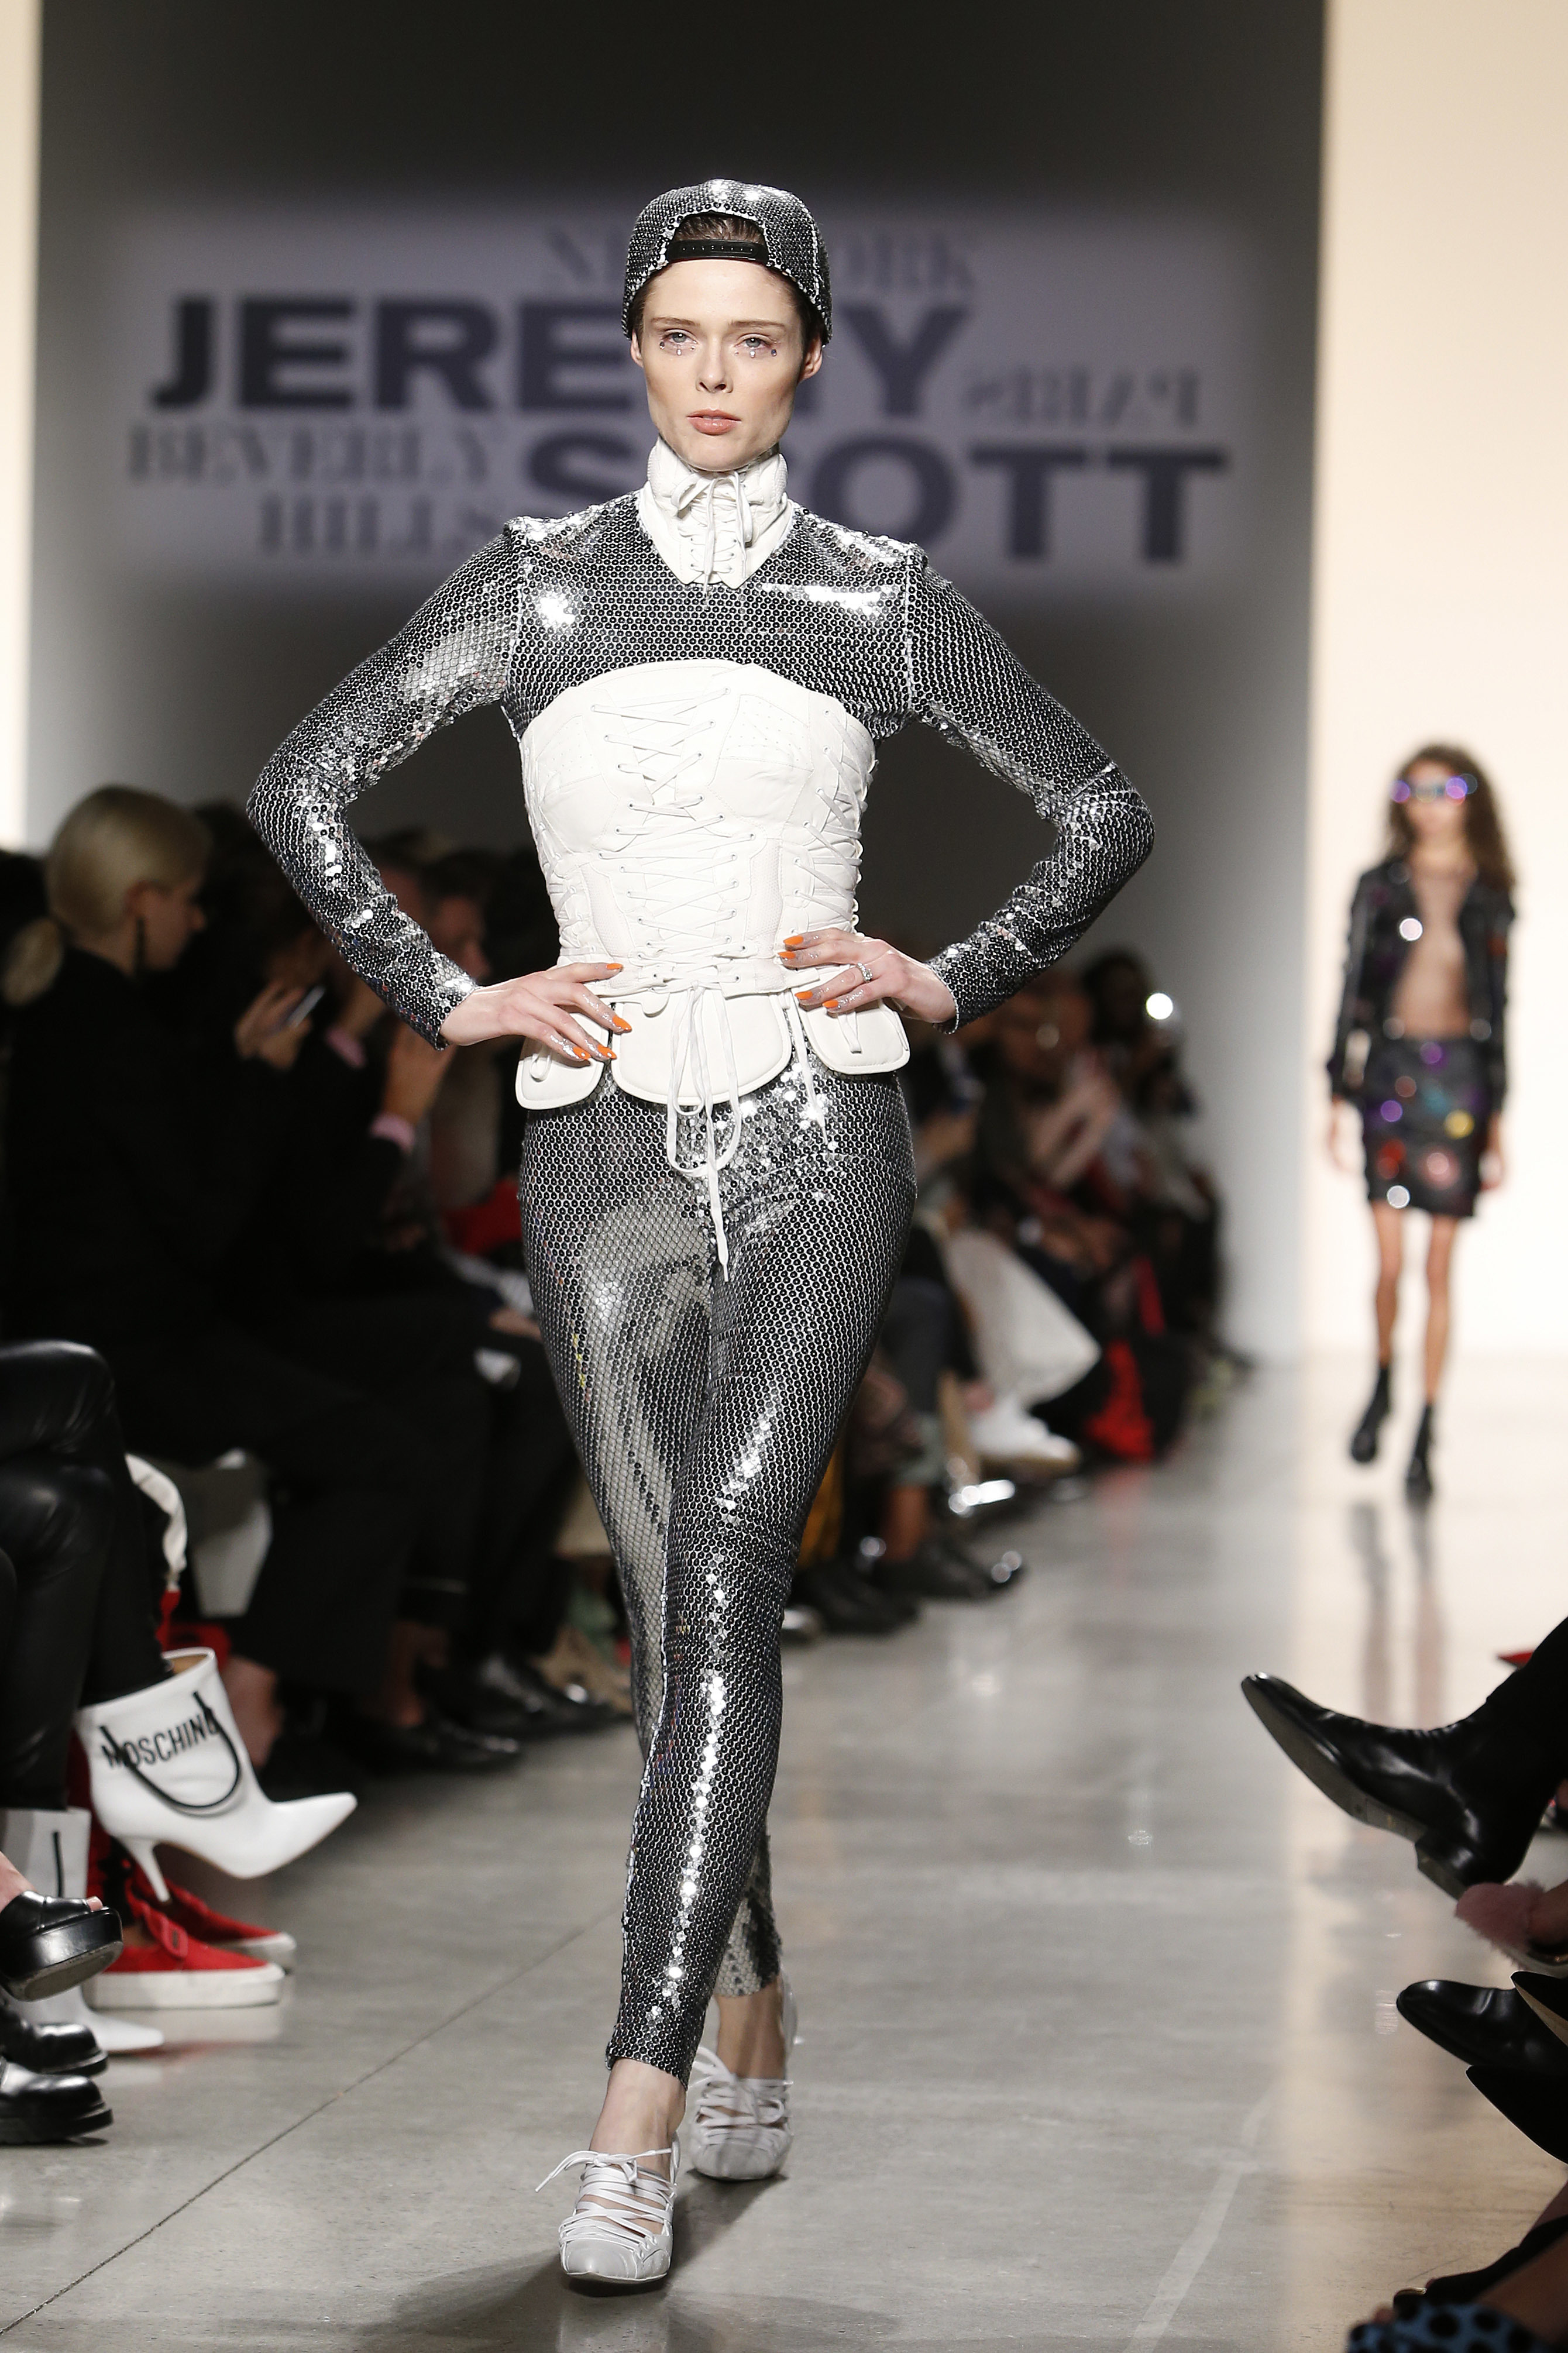 Jeremy Scott glitter jumpsuit